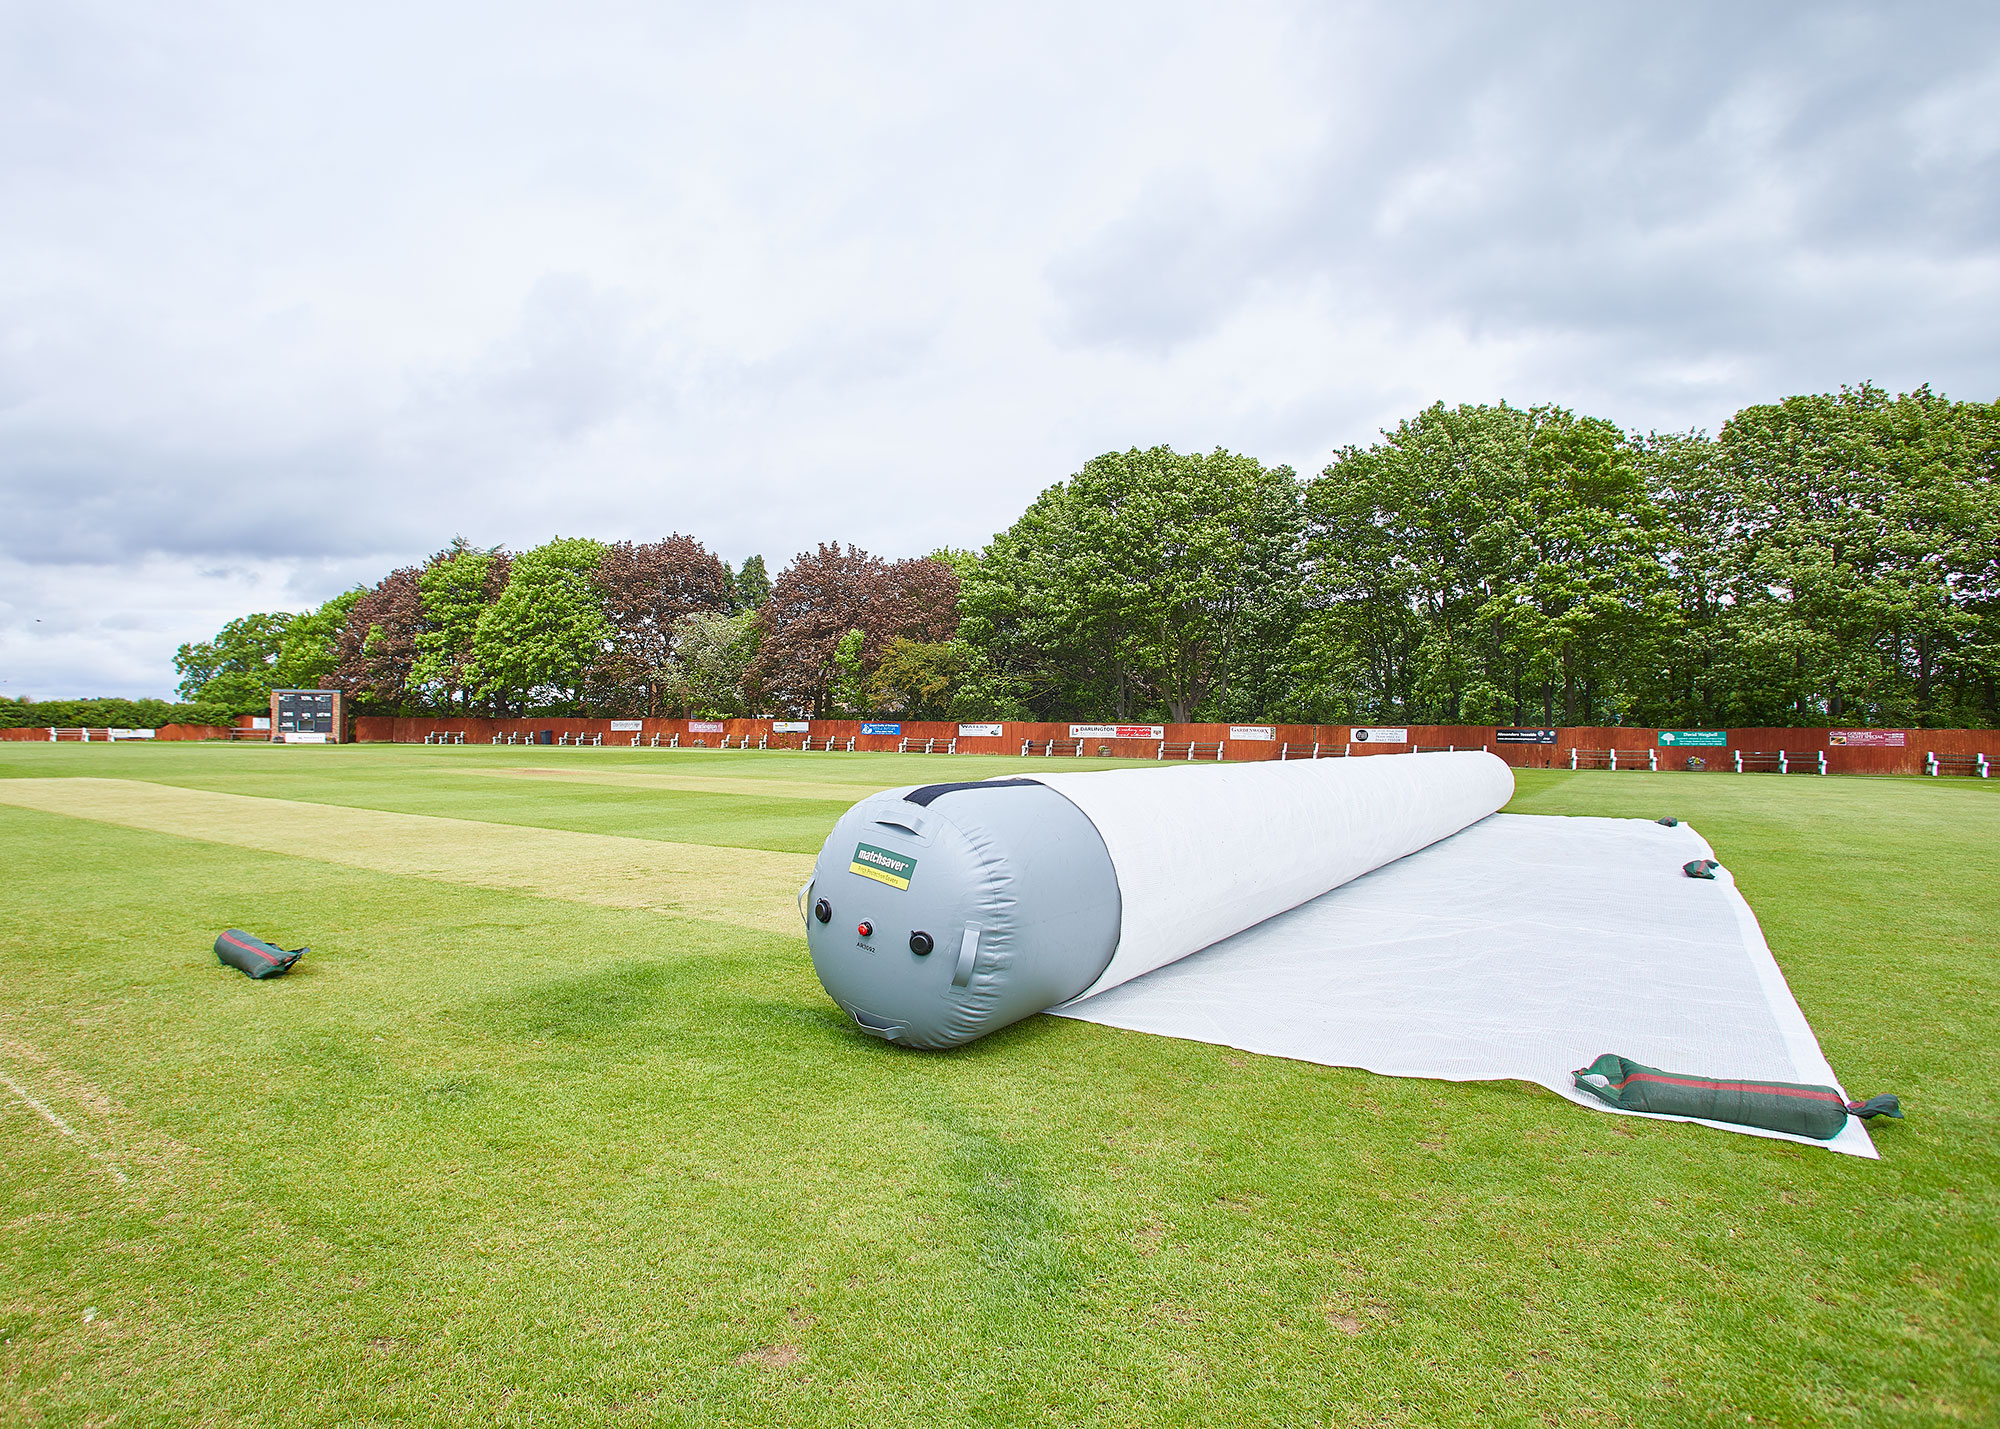 Matchsaver air roller cricket covers